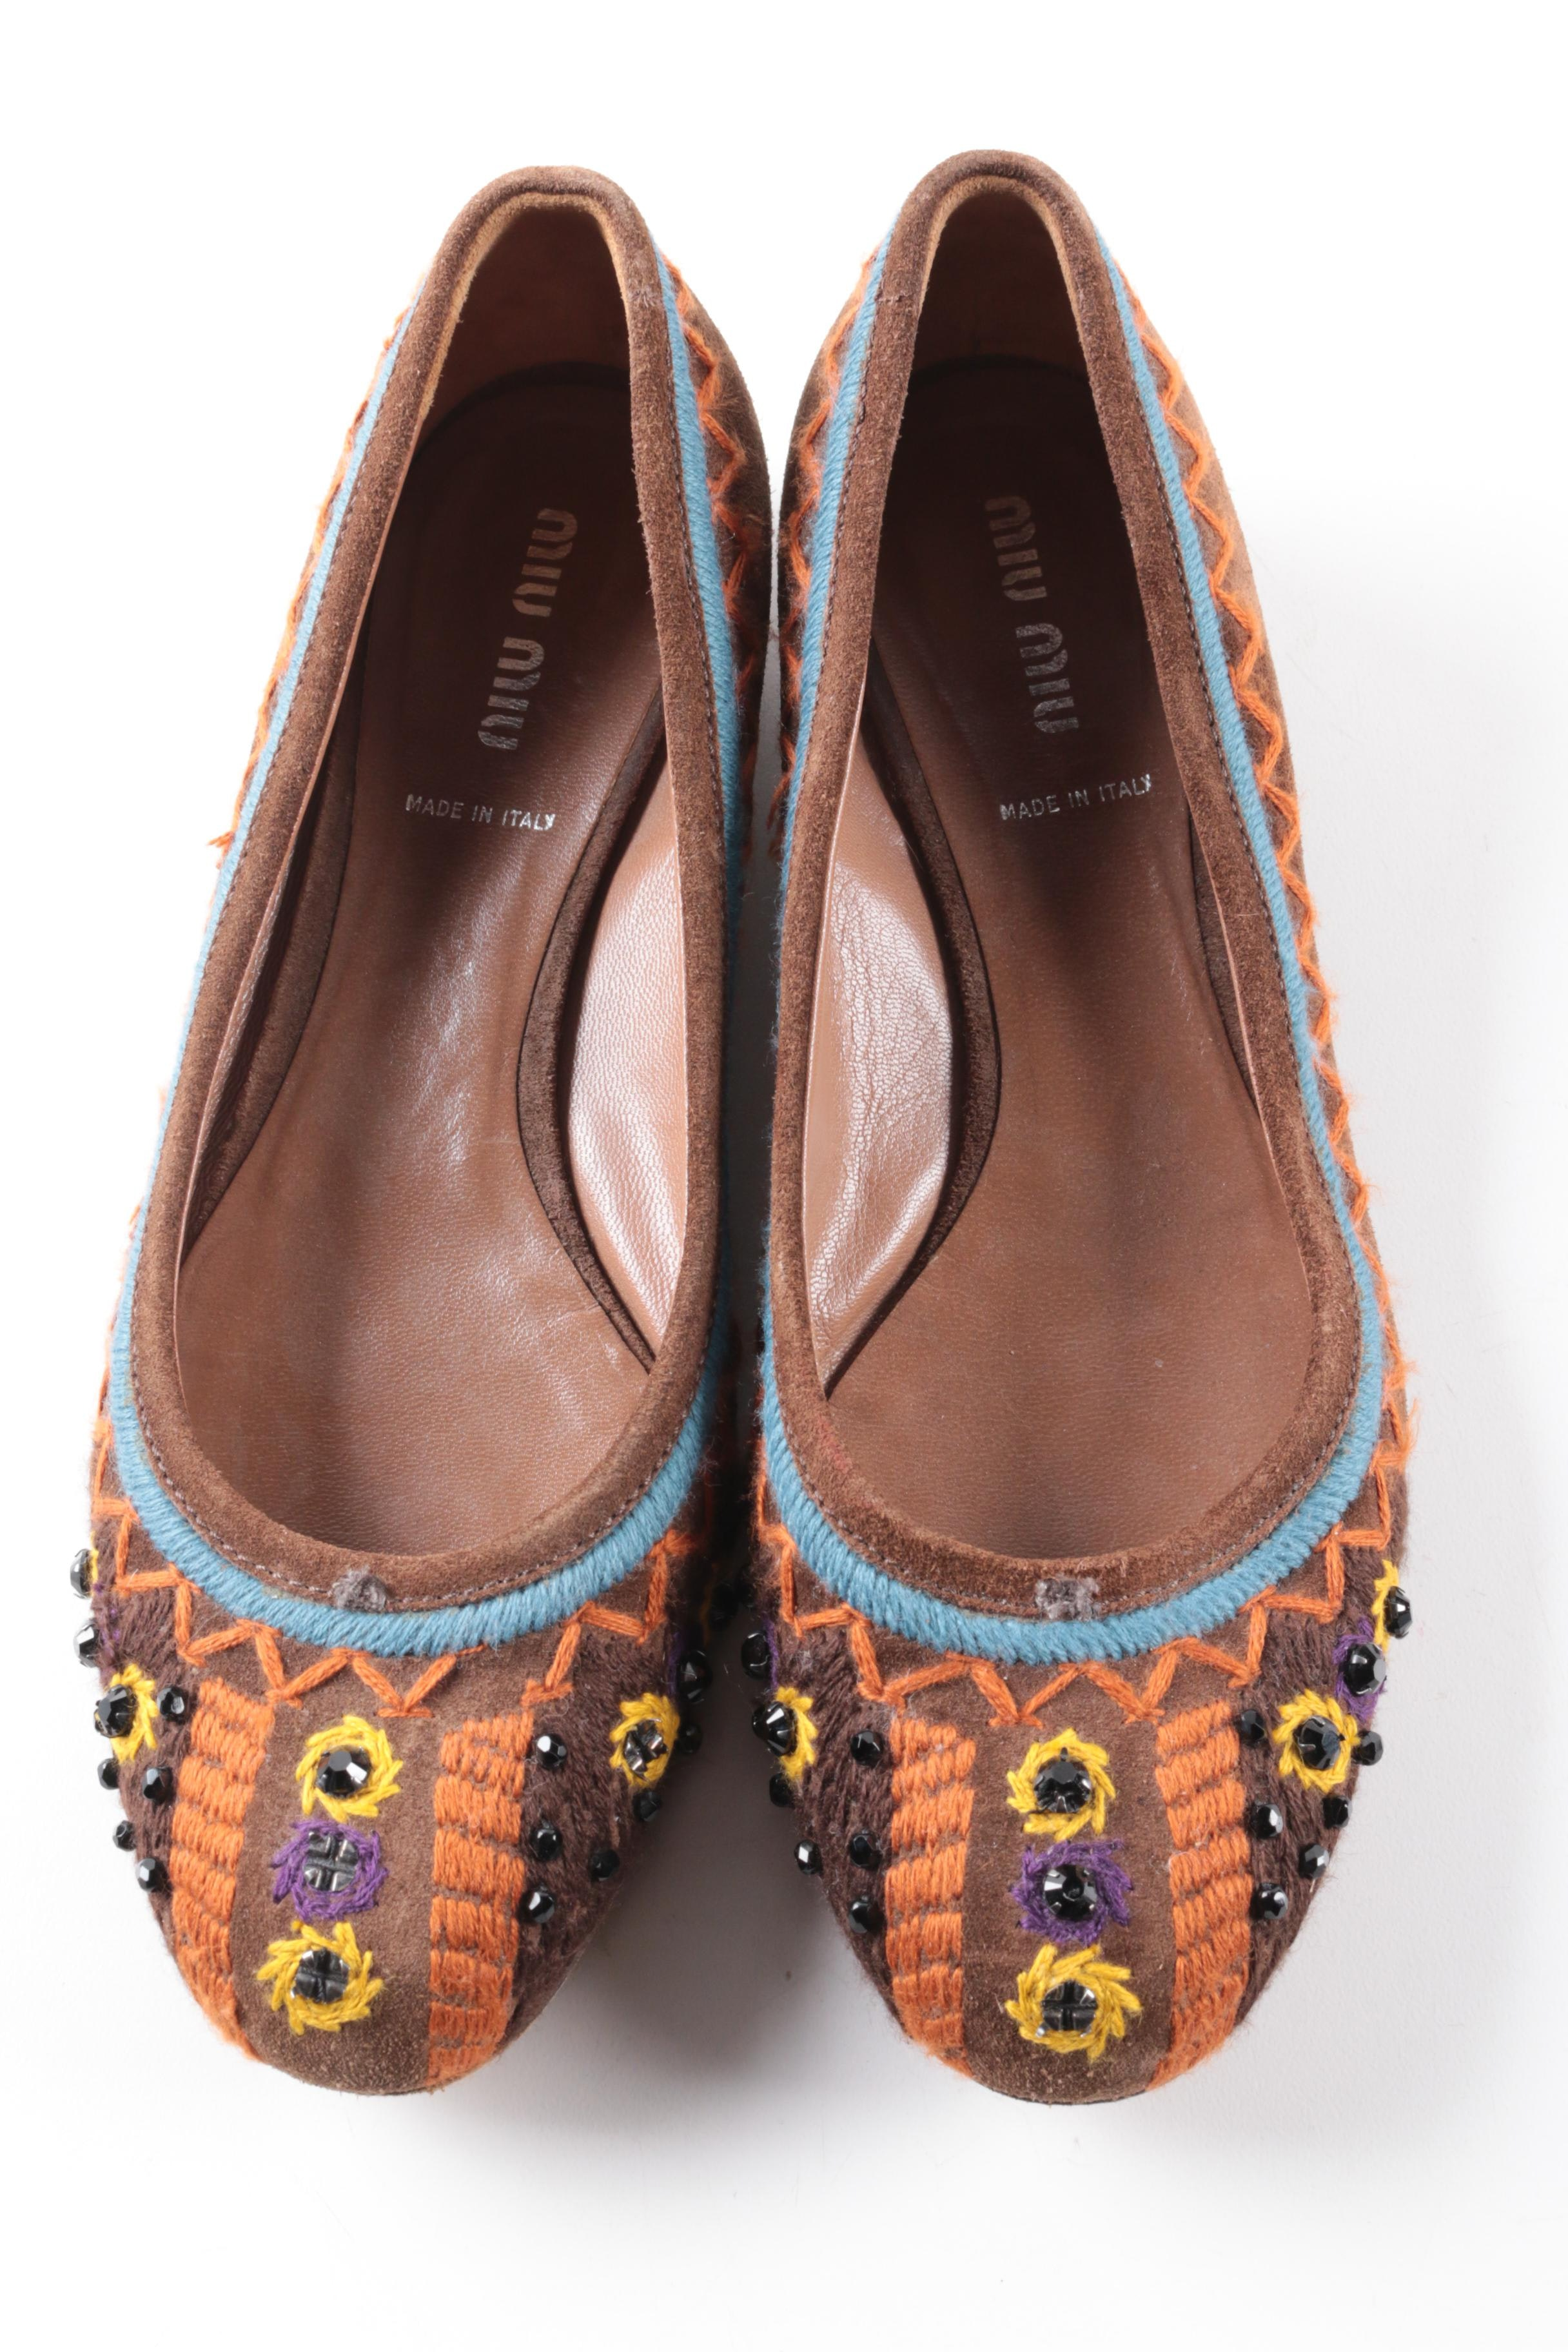 Miu Miu Embroidered and Beaded Brown Suede Flats